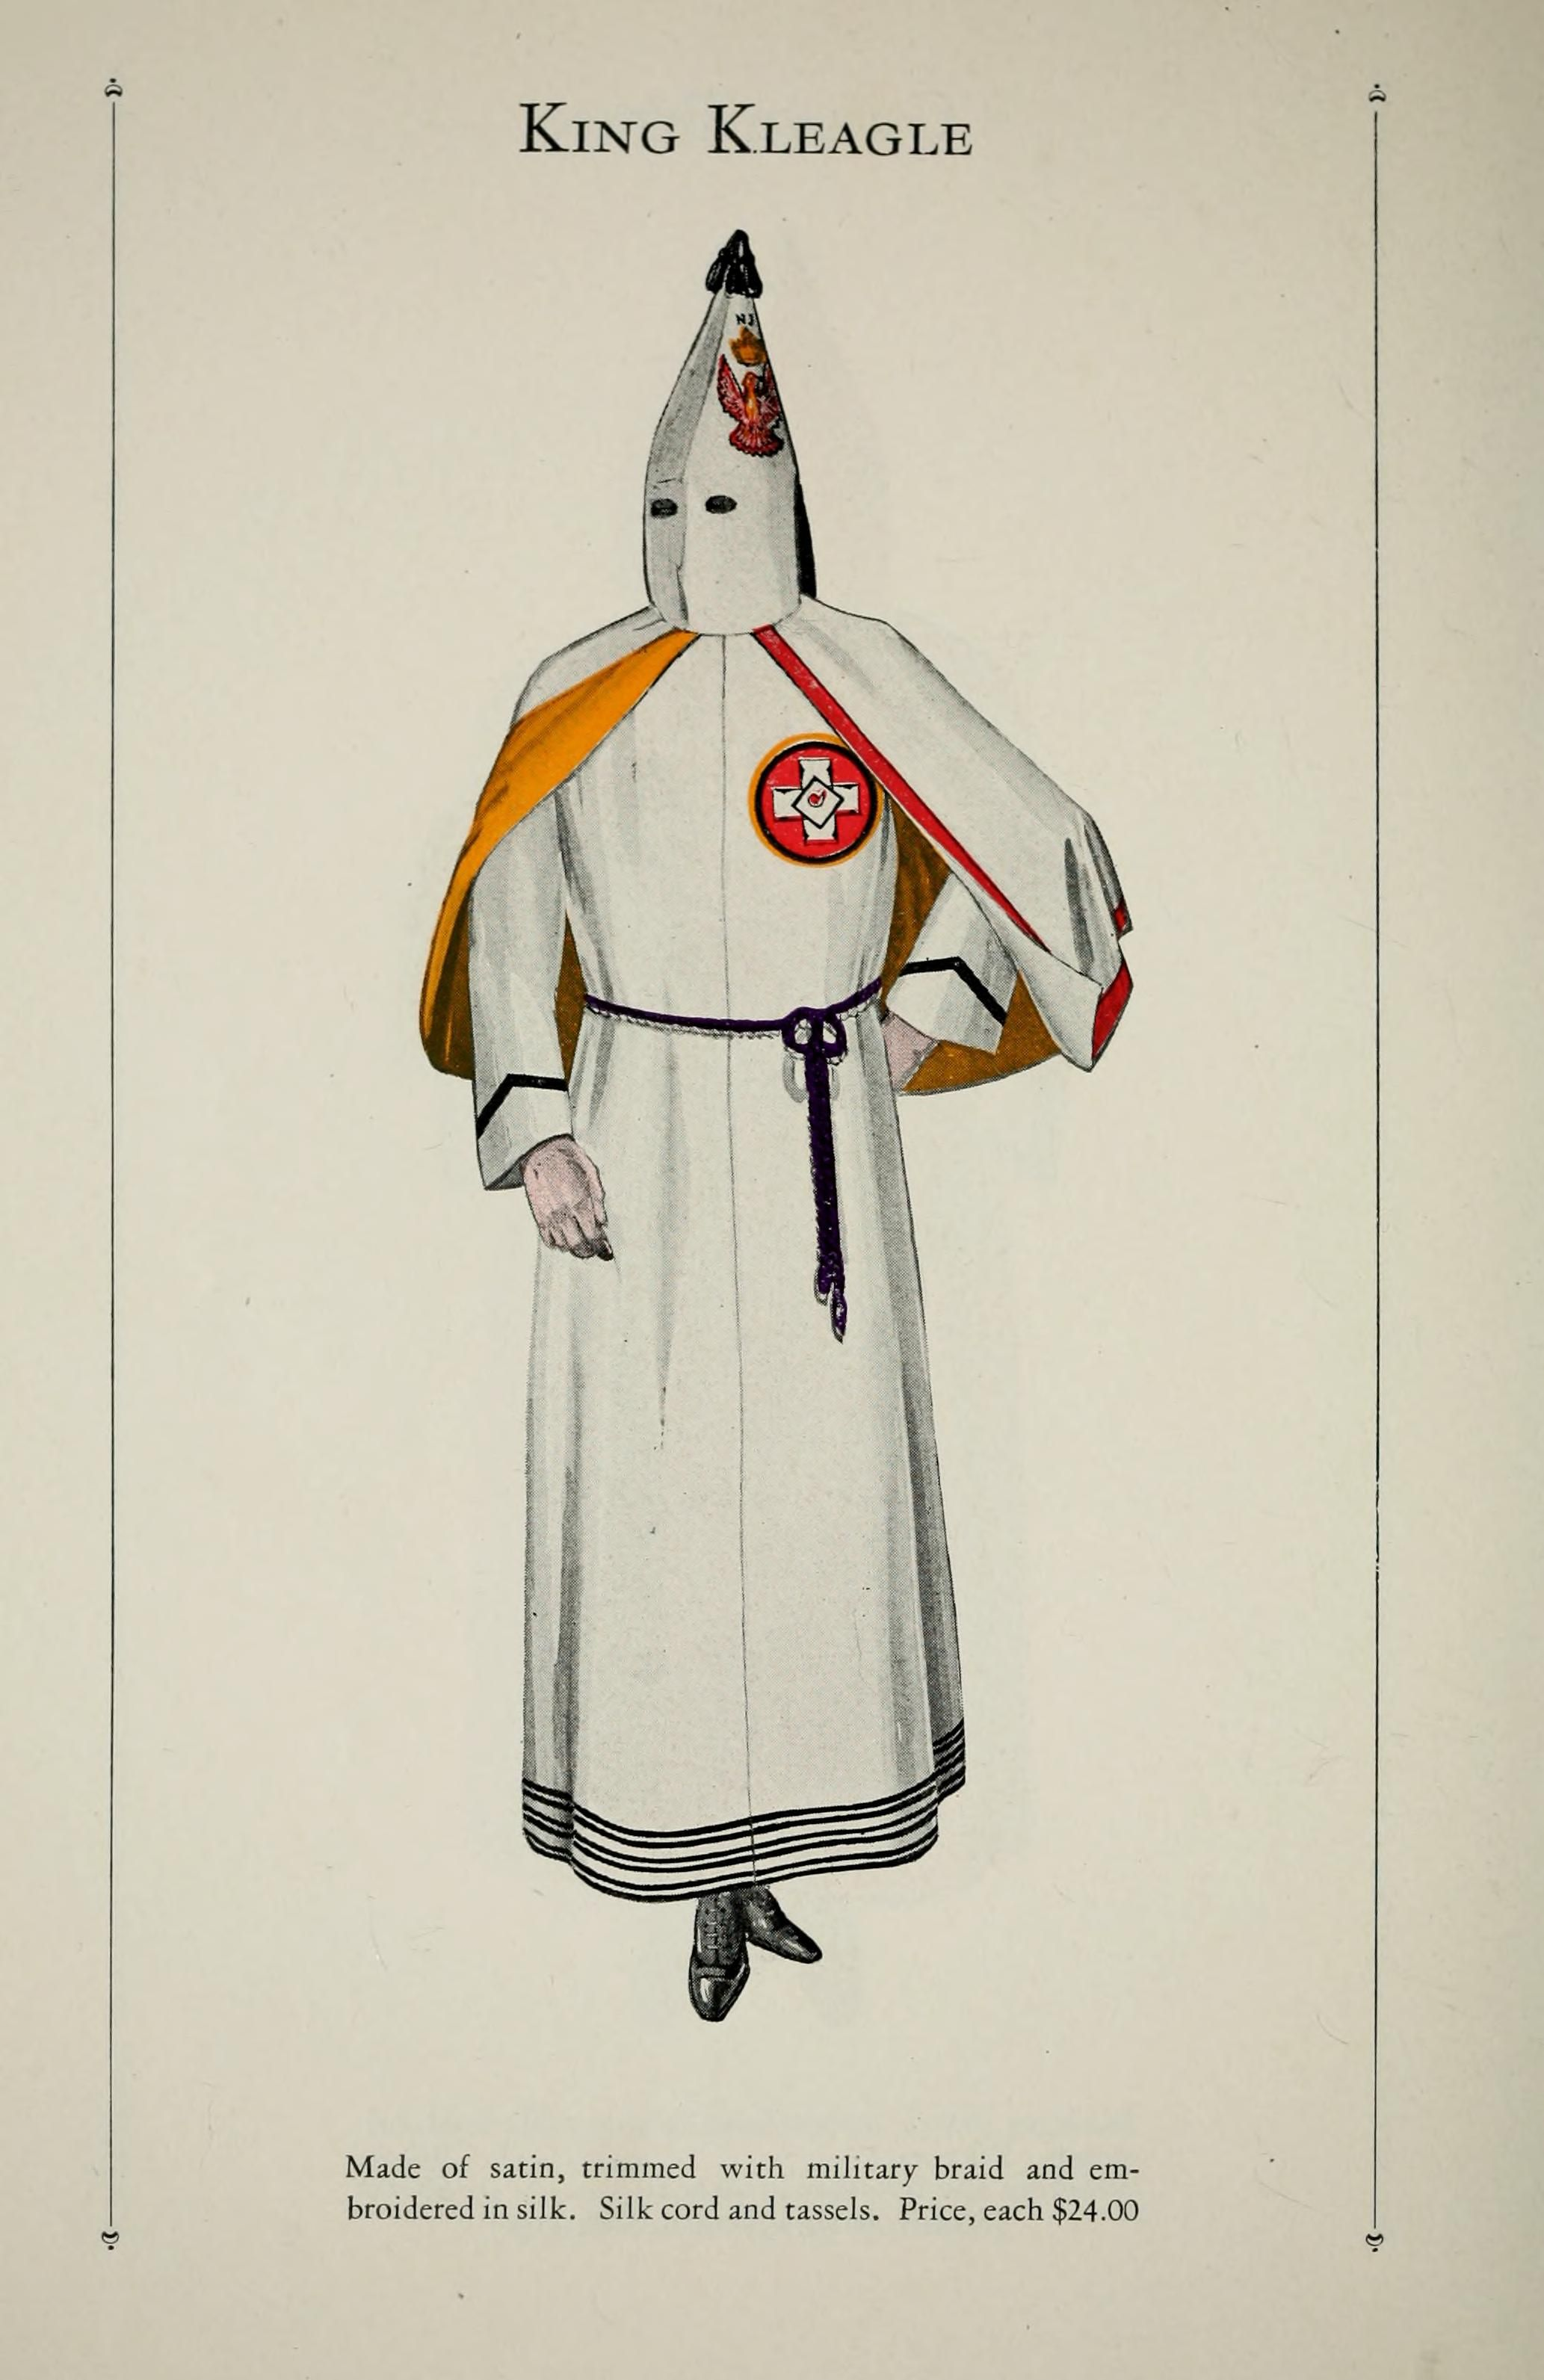 catalogue of offical robes and banners by the ku klux klan catalogue of offical robes and banners by the ku klux klan retronaut